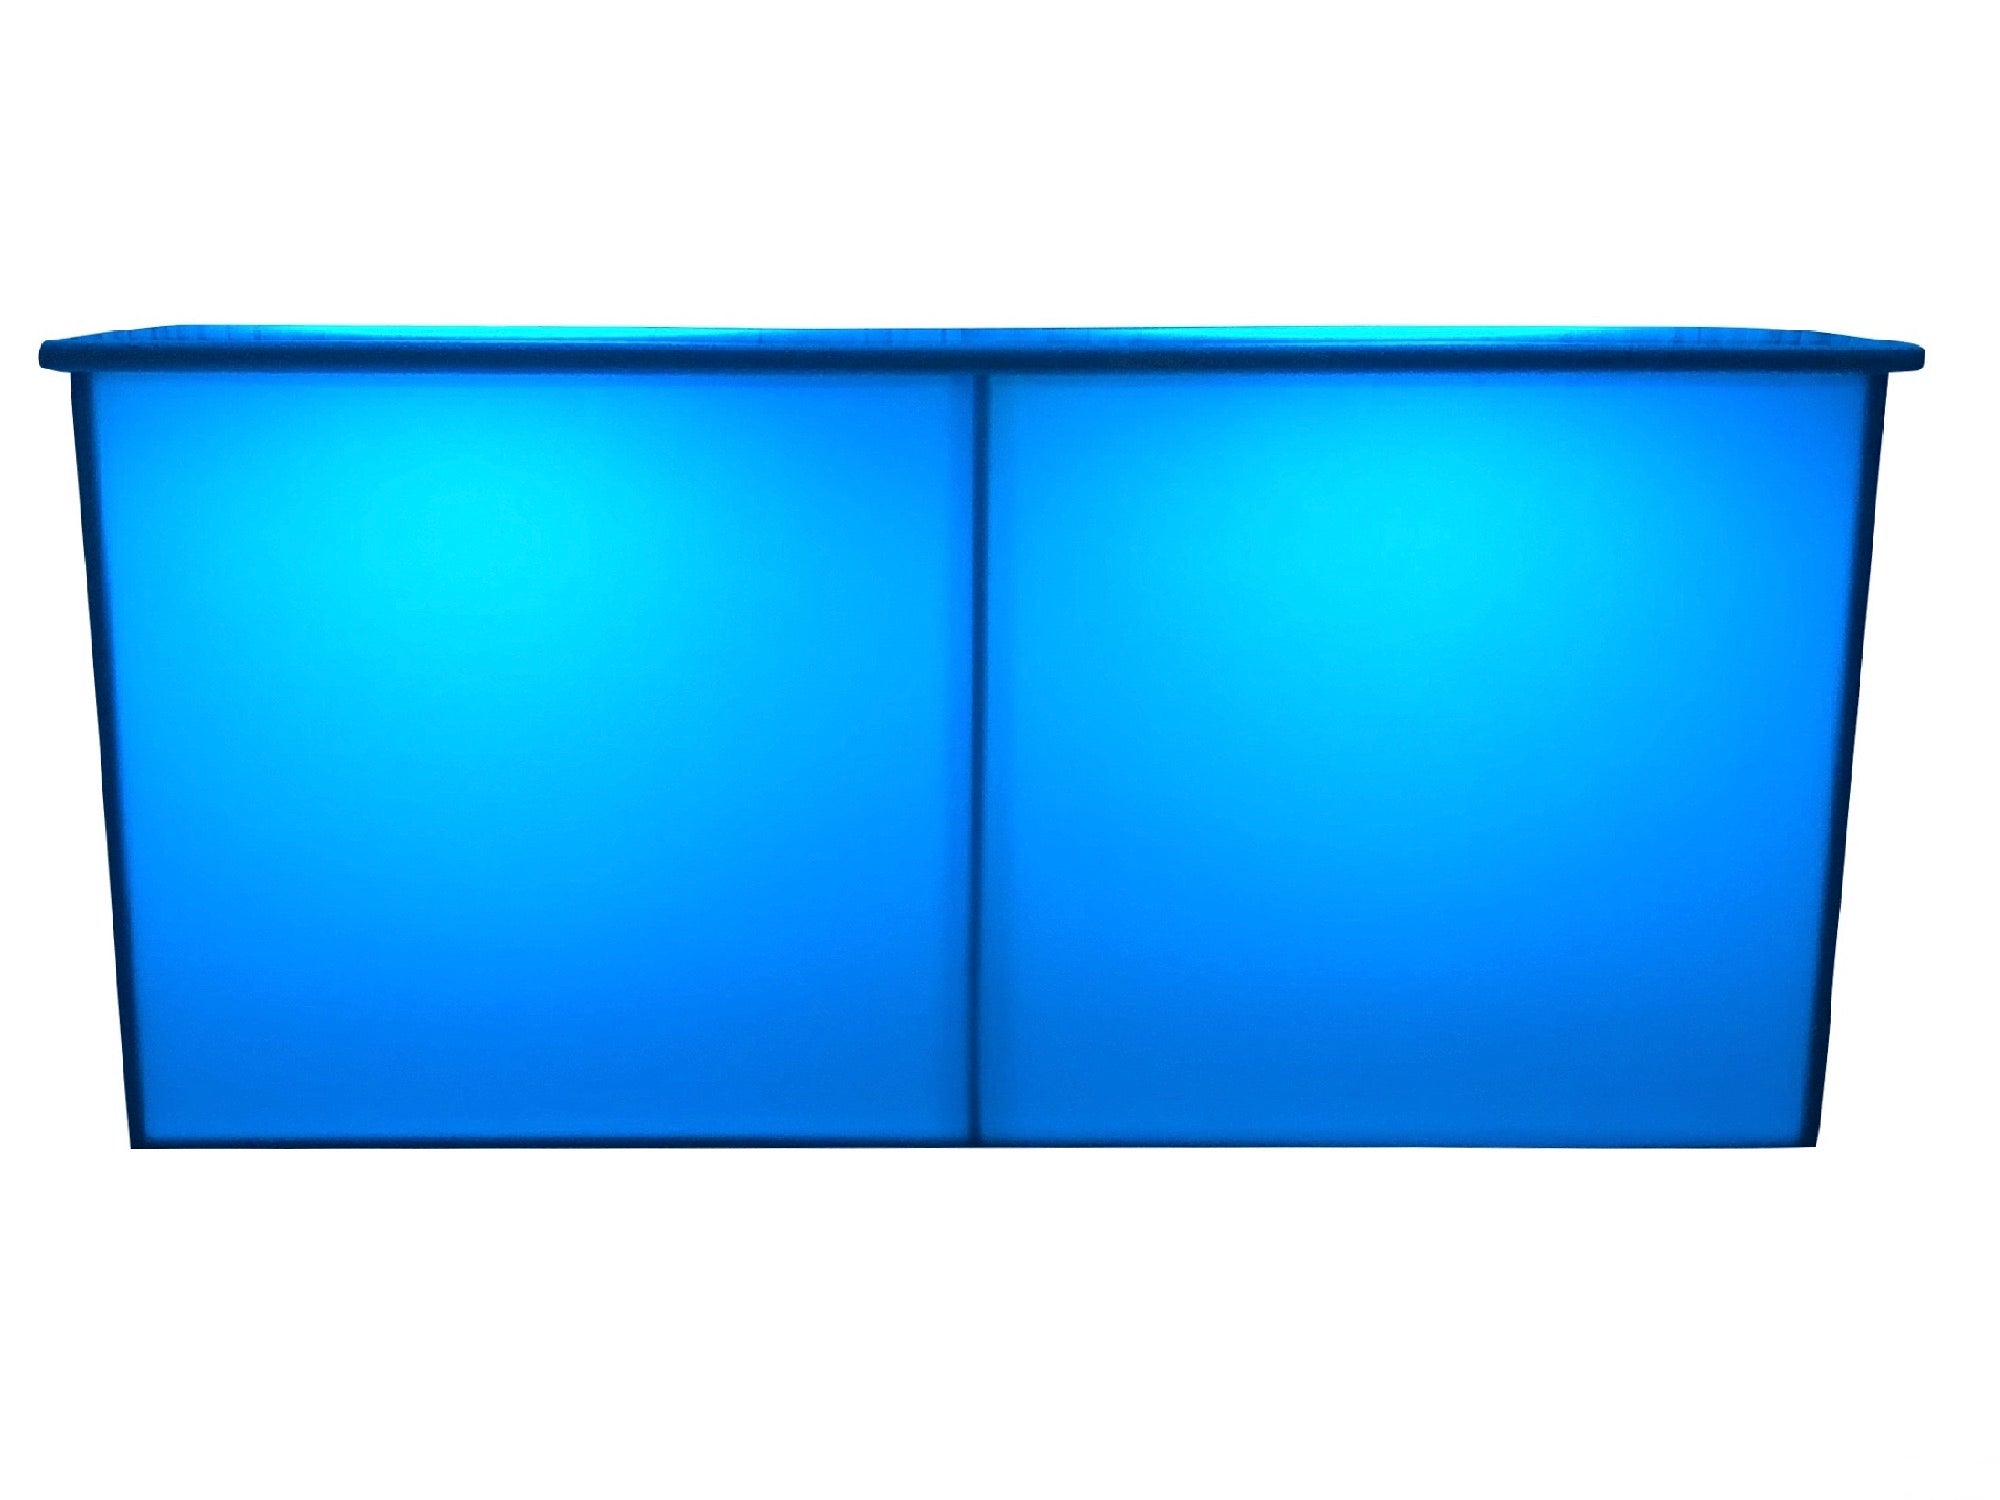 ILLUMINATED 8ft ACRYLIC BAR